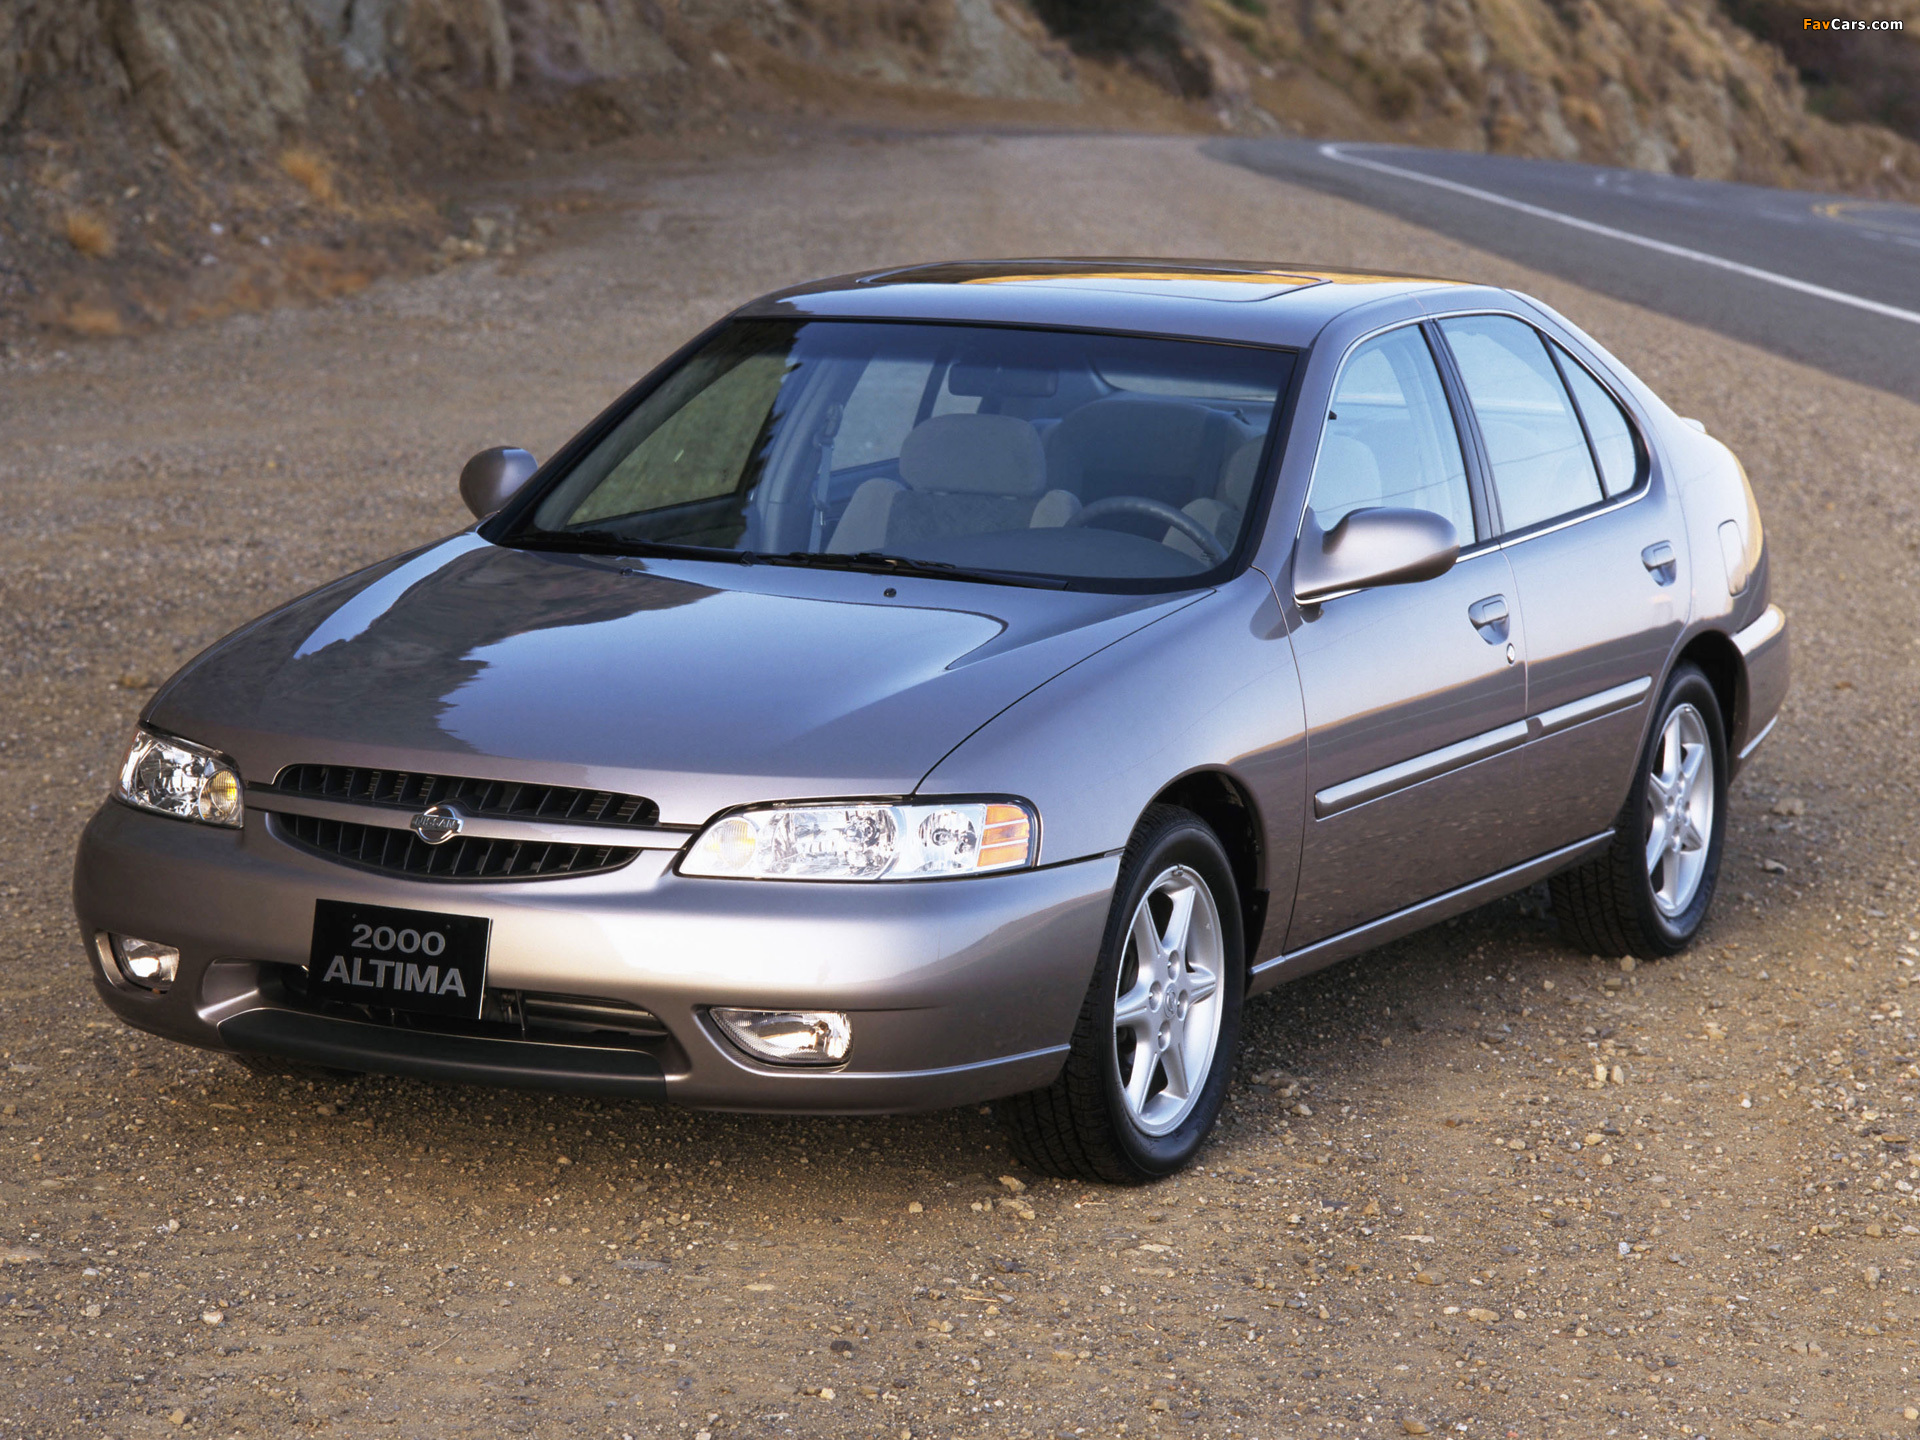 Nissan Altima 2001 02 Pictures 1920x1440